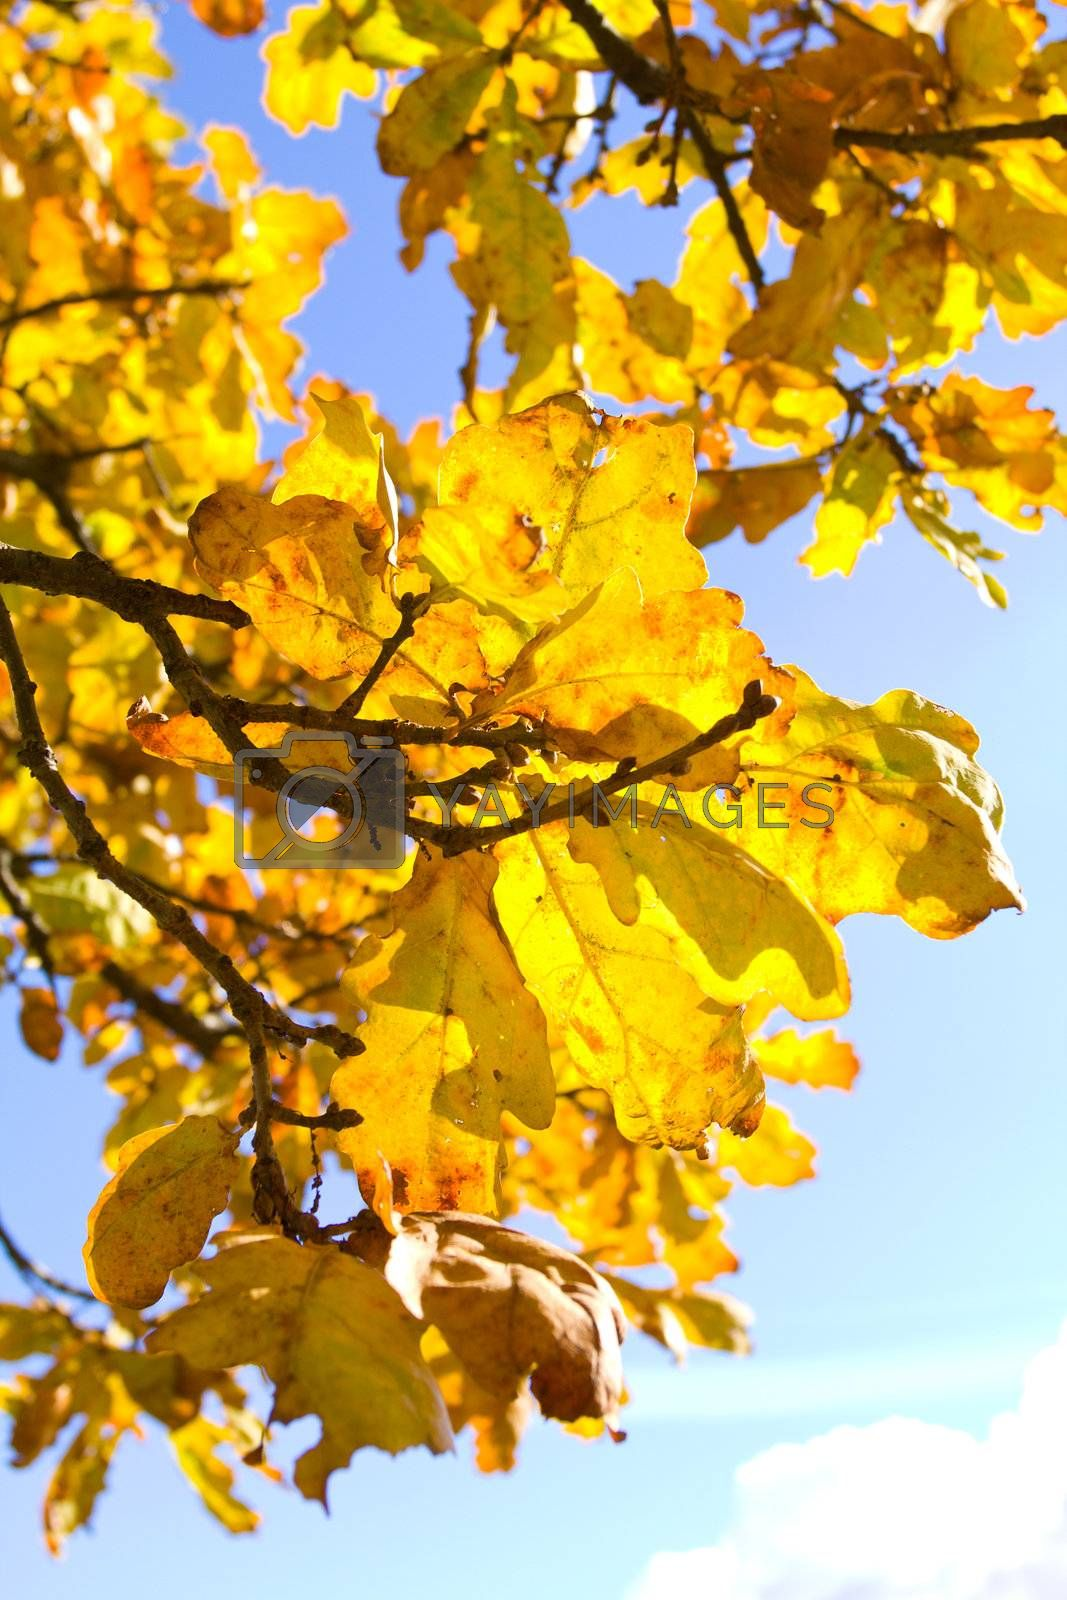 autumn oak leaves against blue sky